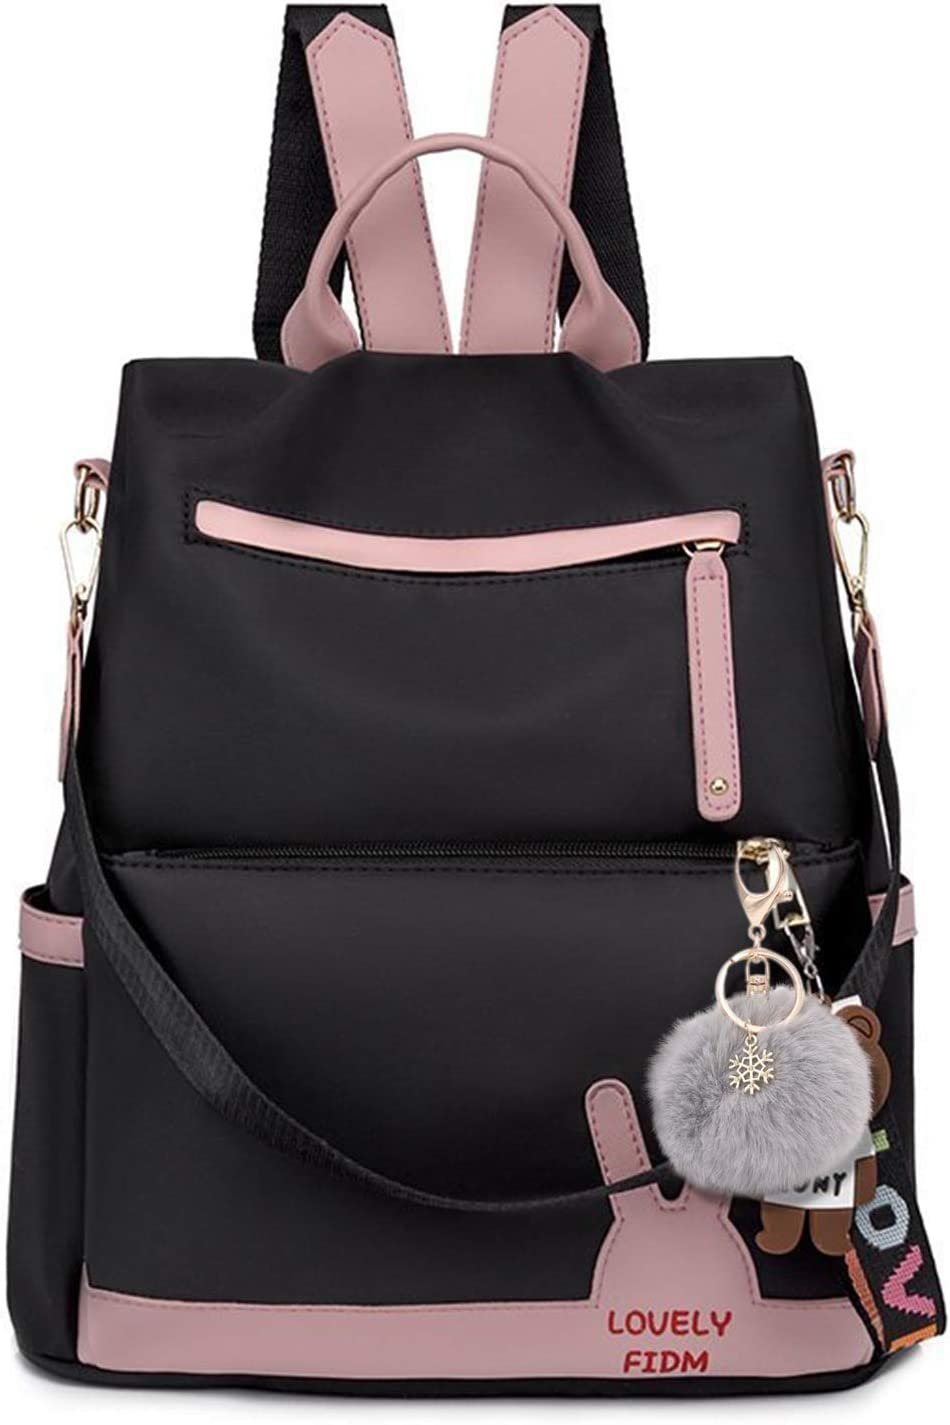 Backpack New Shipping Free Purse Los Angeles Mall Shoulder Bag Waterproof Anti-theft Knapsack Tote